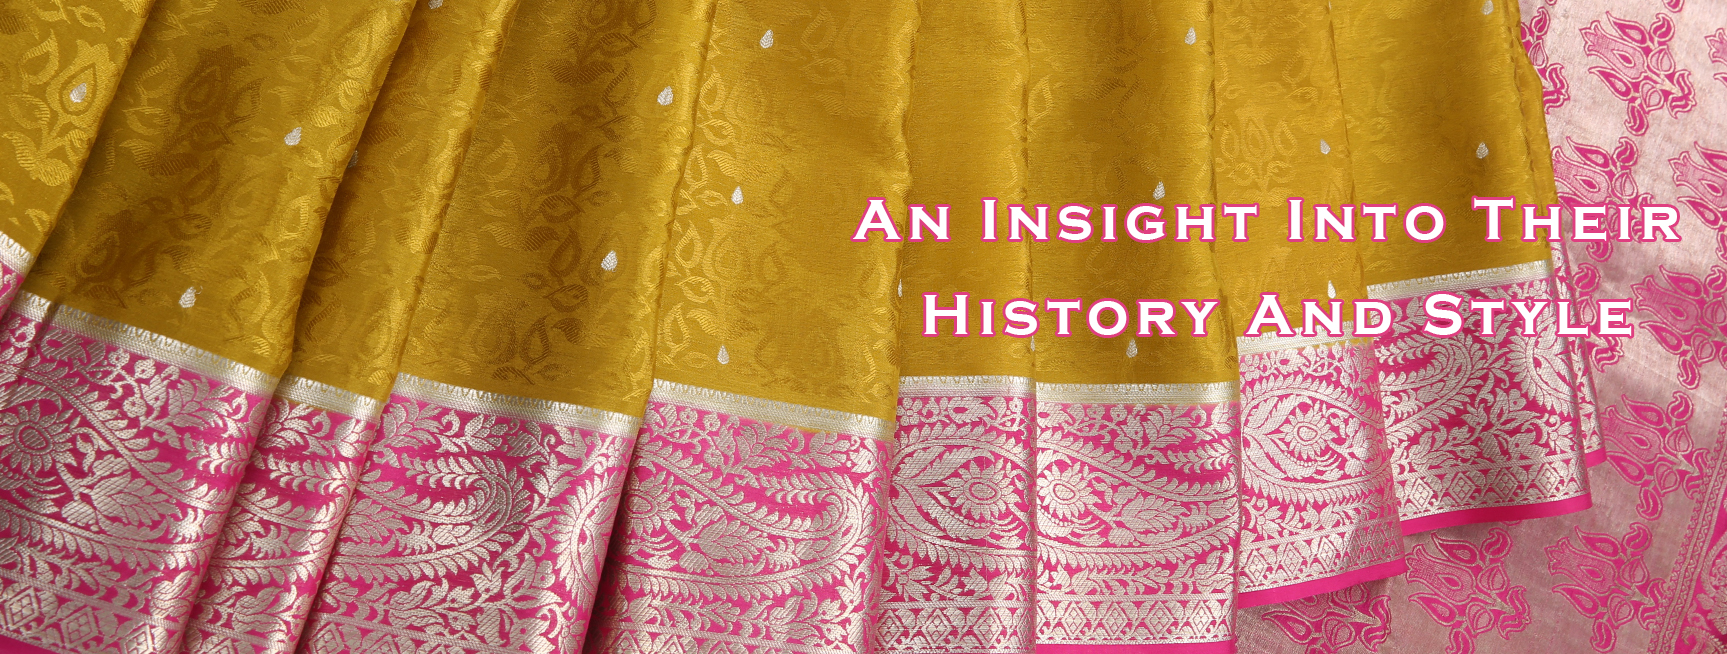 Mysore Silk Sarees: An Insight Into Their History And Style